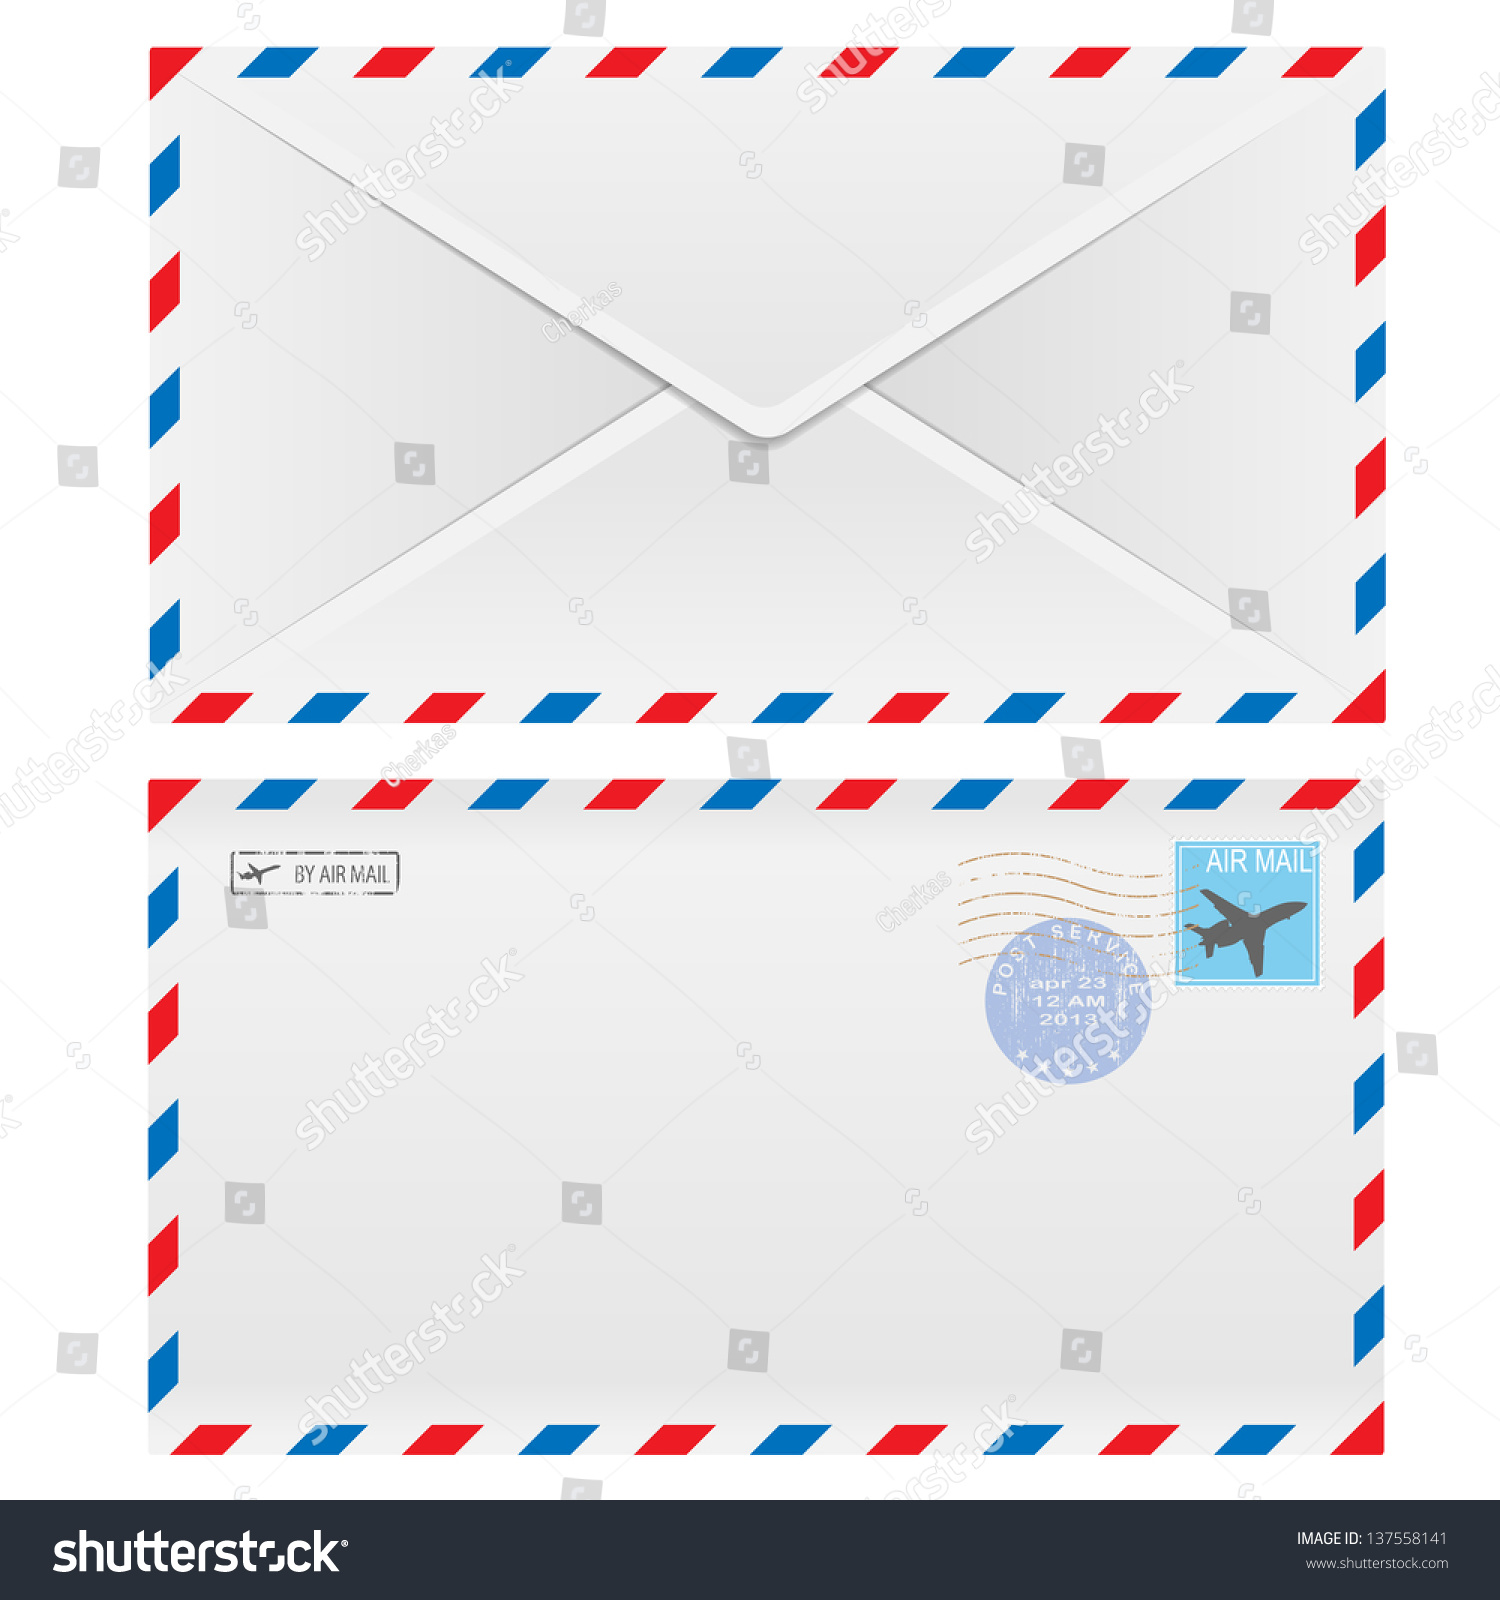 Air Mail Envelope Postal Stamp Isolated Stock Vector